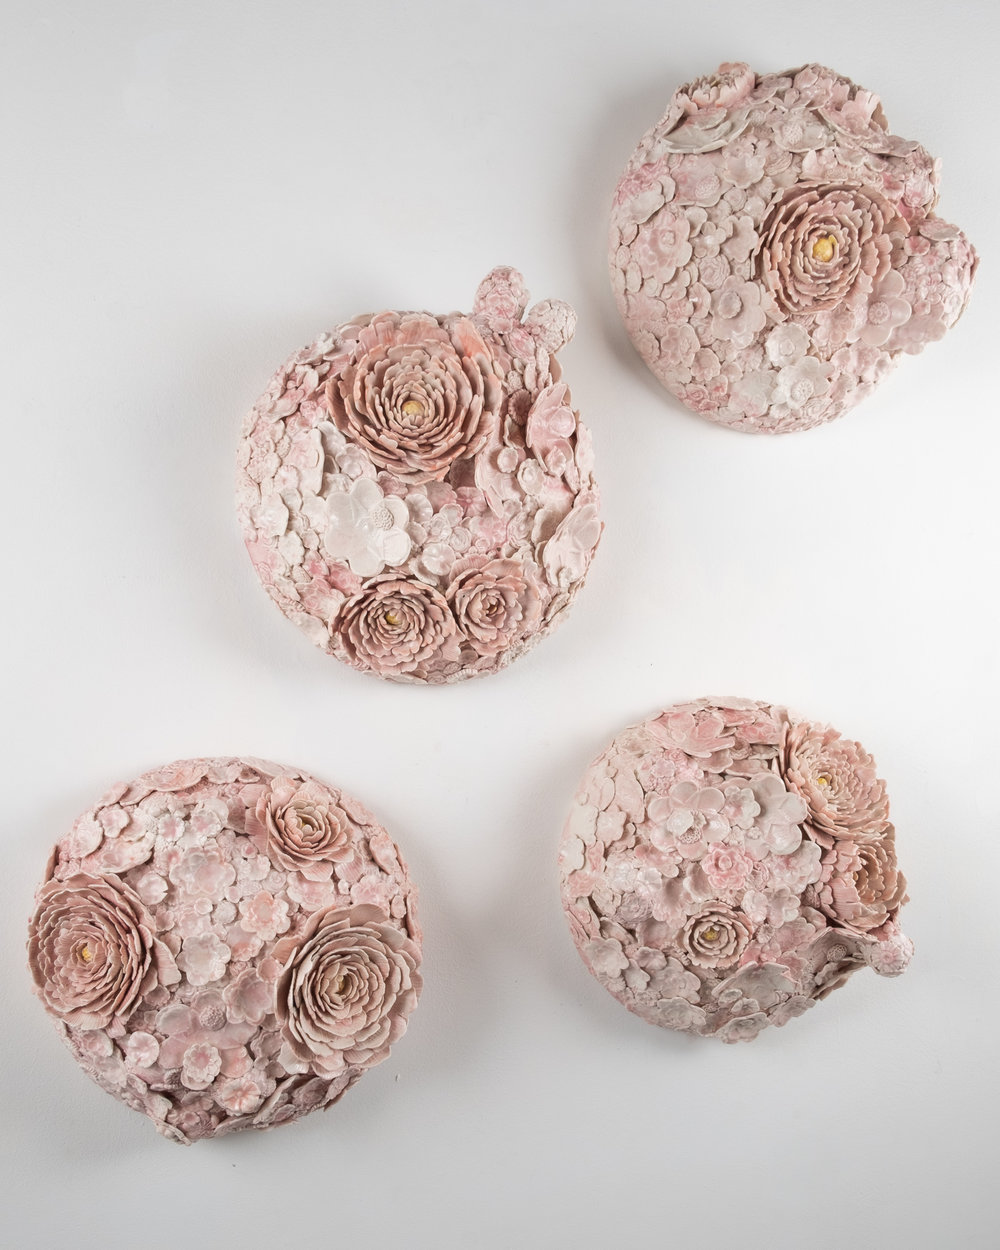 Hanazume (Packed Florals) Roundels I-IV   Wheel-thrown and handbuilt porcelain with press-molded sprigs from three-dimensional model prints and hand-modelled florals, glaze  13 x 13 x 8 inches VZI 002G